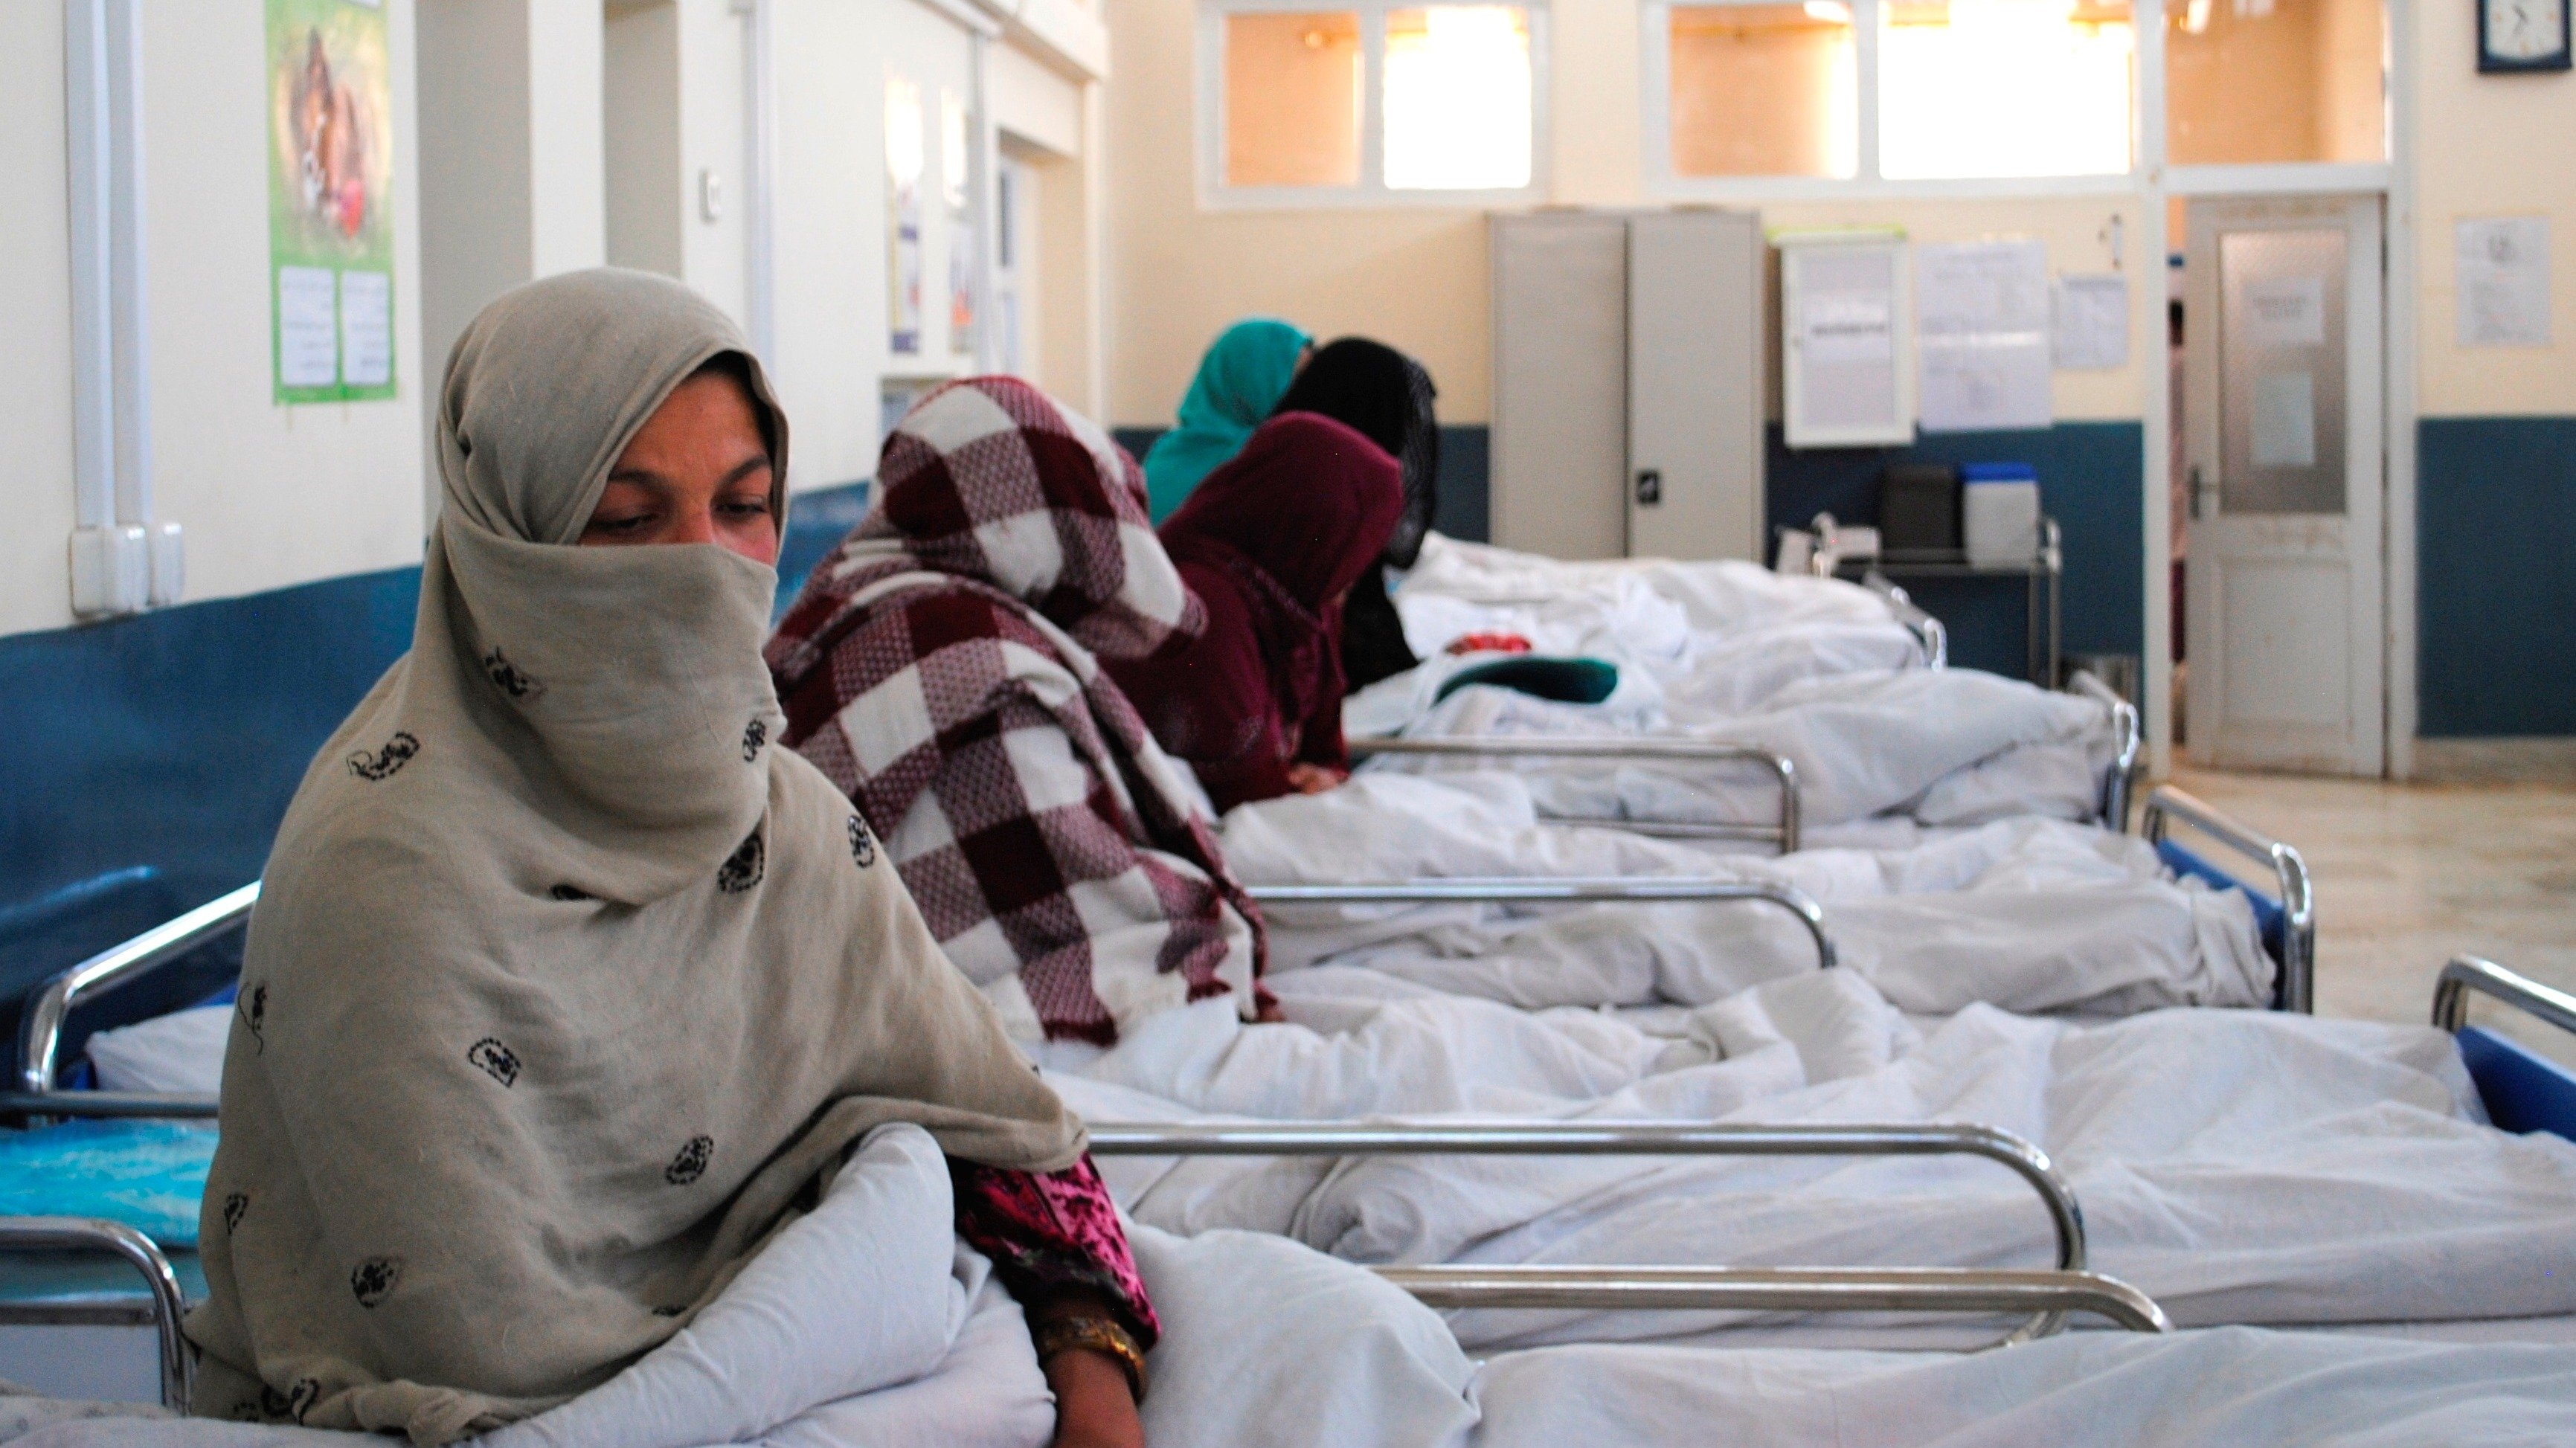 The inpatient department for women who have just given birth at Ahmed Shah Baba Hospital in the Afghan capital Kabul.  Women (without complications) can stay up to 12 hours after giving birth. Medecins Sans Frontieres (MSF) has been supporting the distric